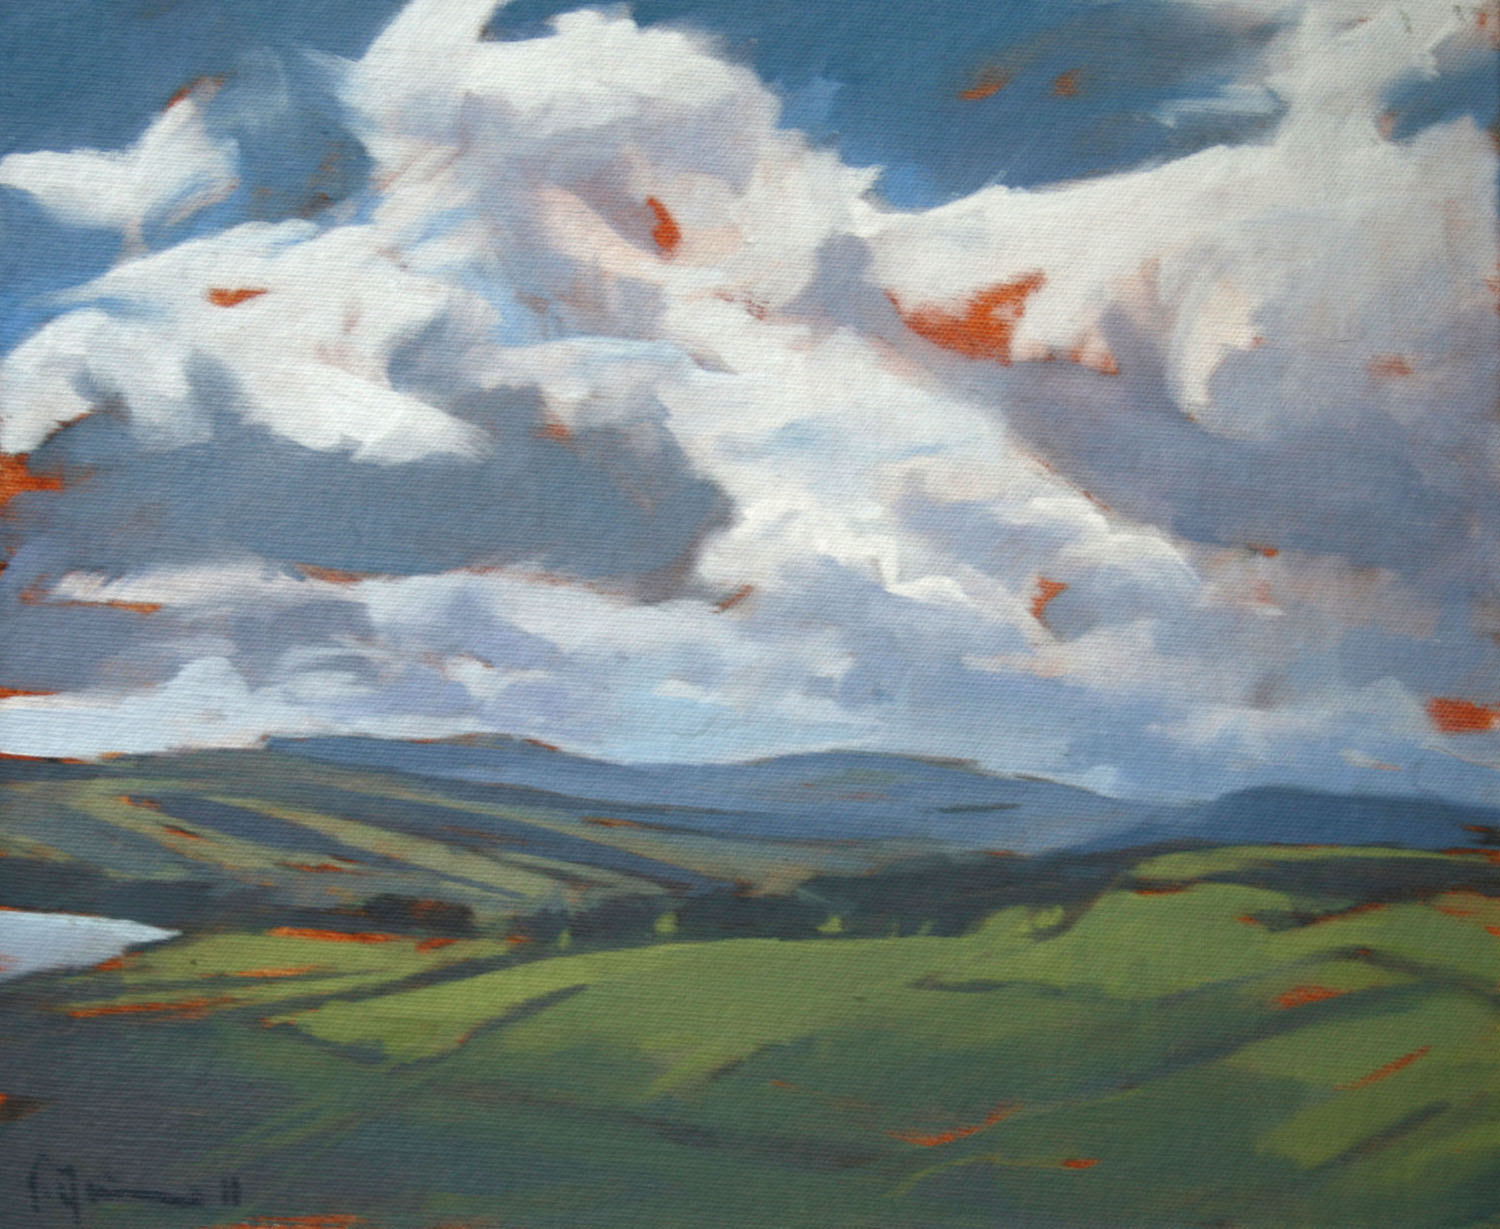 Tracey Quinn_2011_Antrim Coast Study_oil on canvas_25 x 30cm.jpg